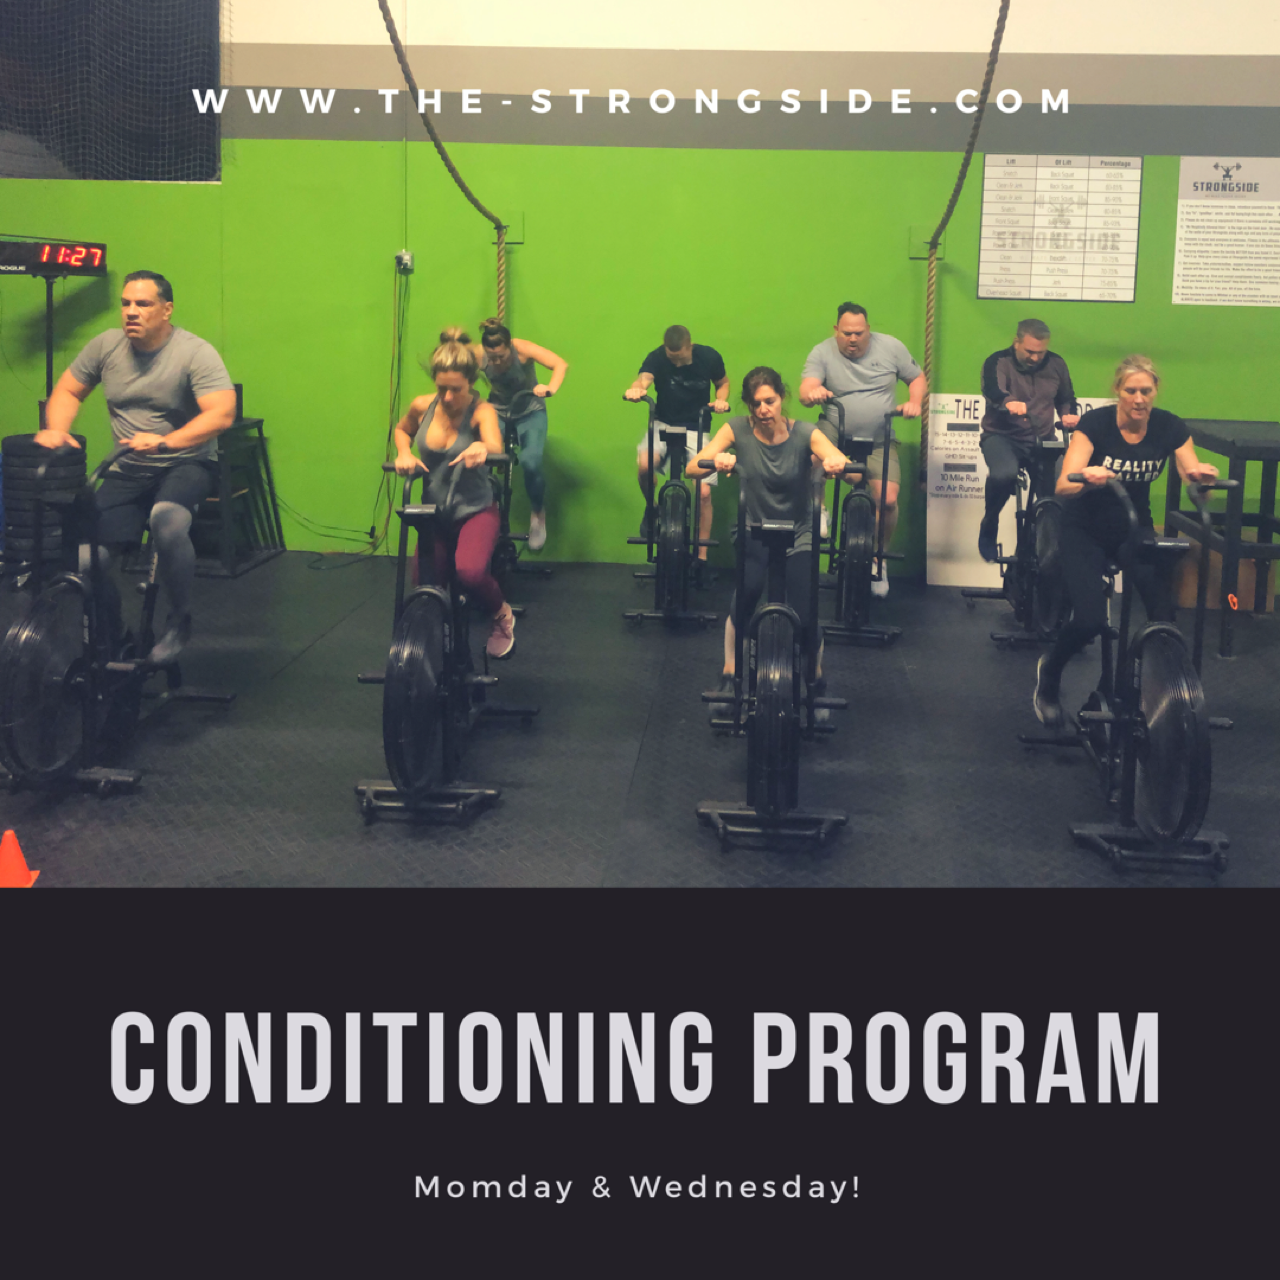 Conditioning Program – Feb. 18th to 23rd 2019